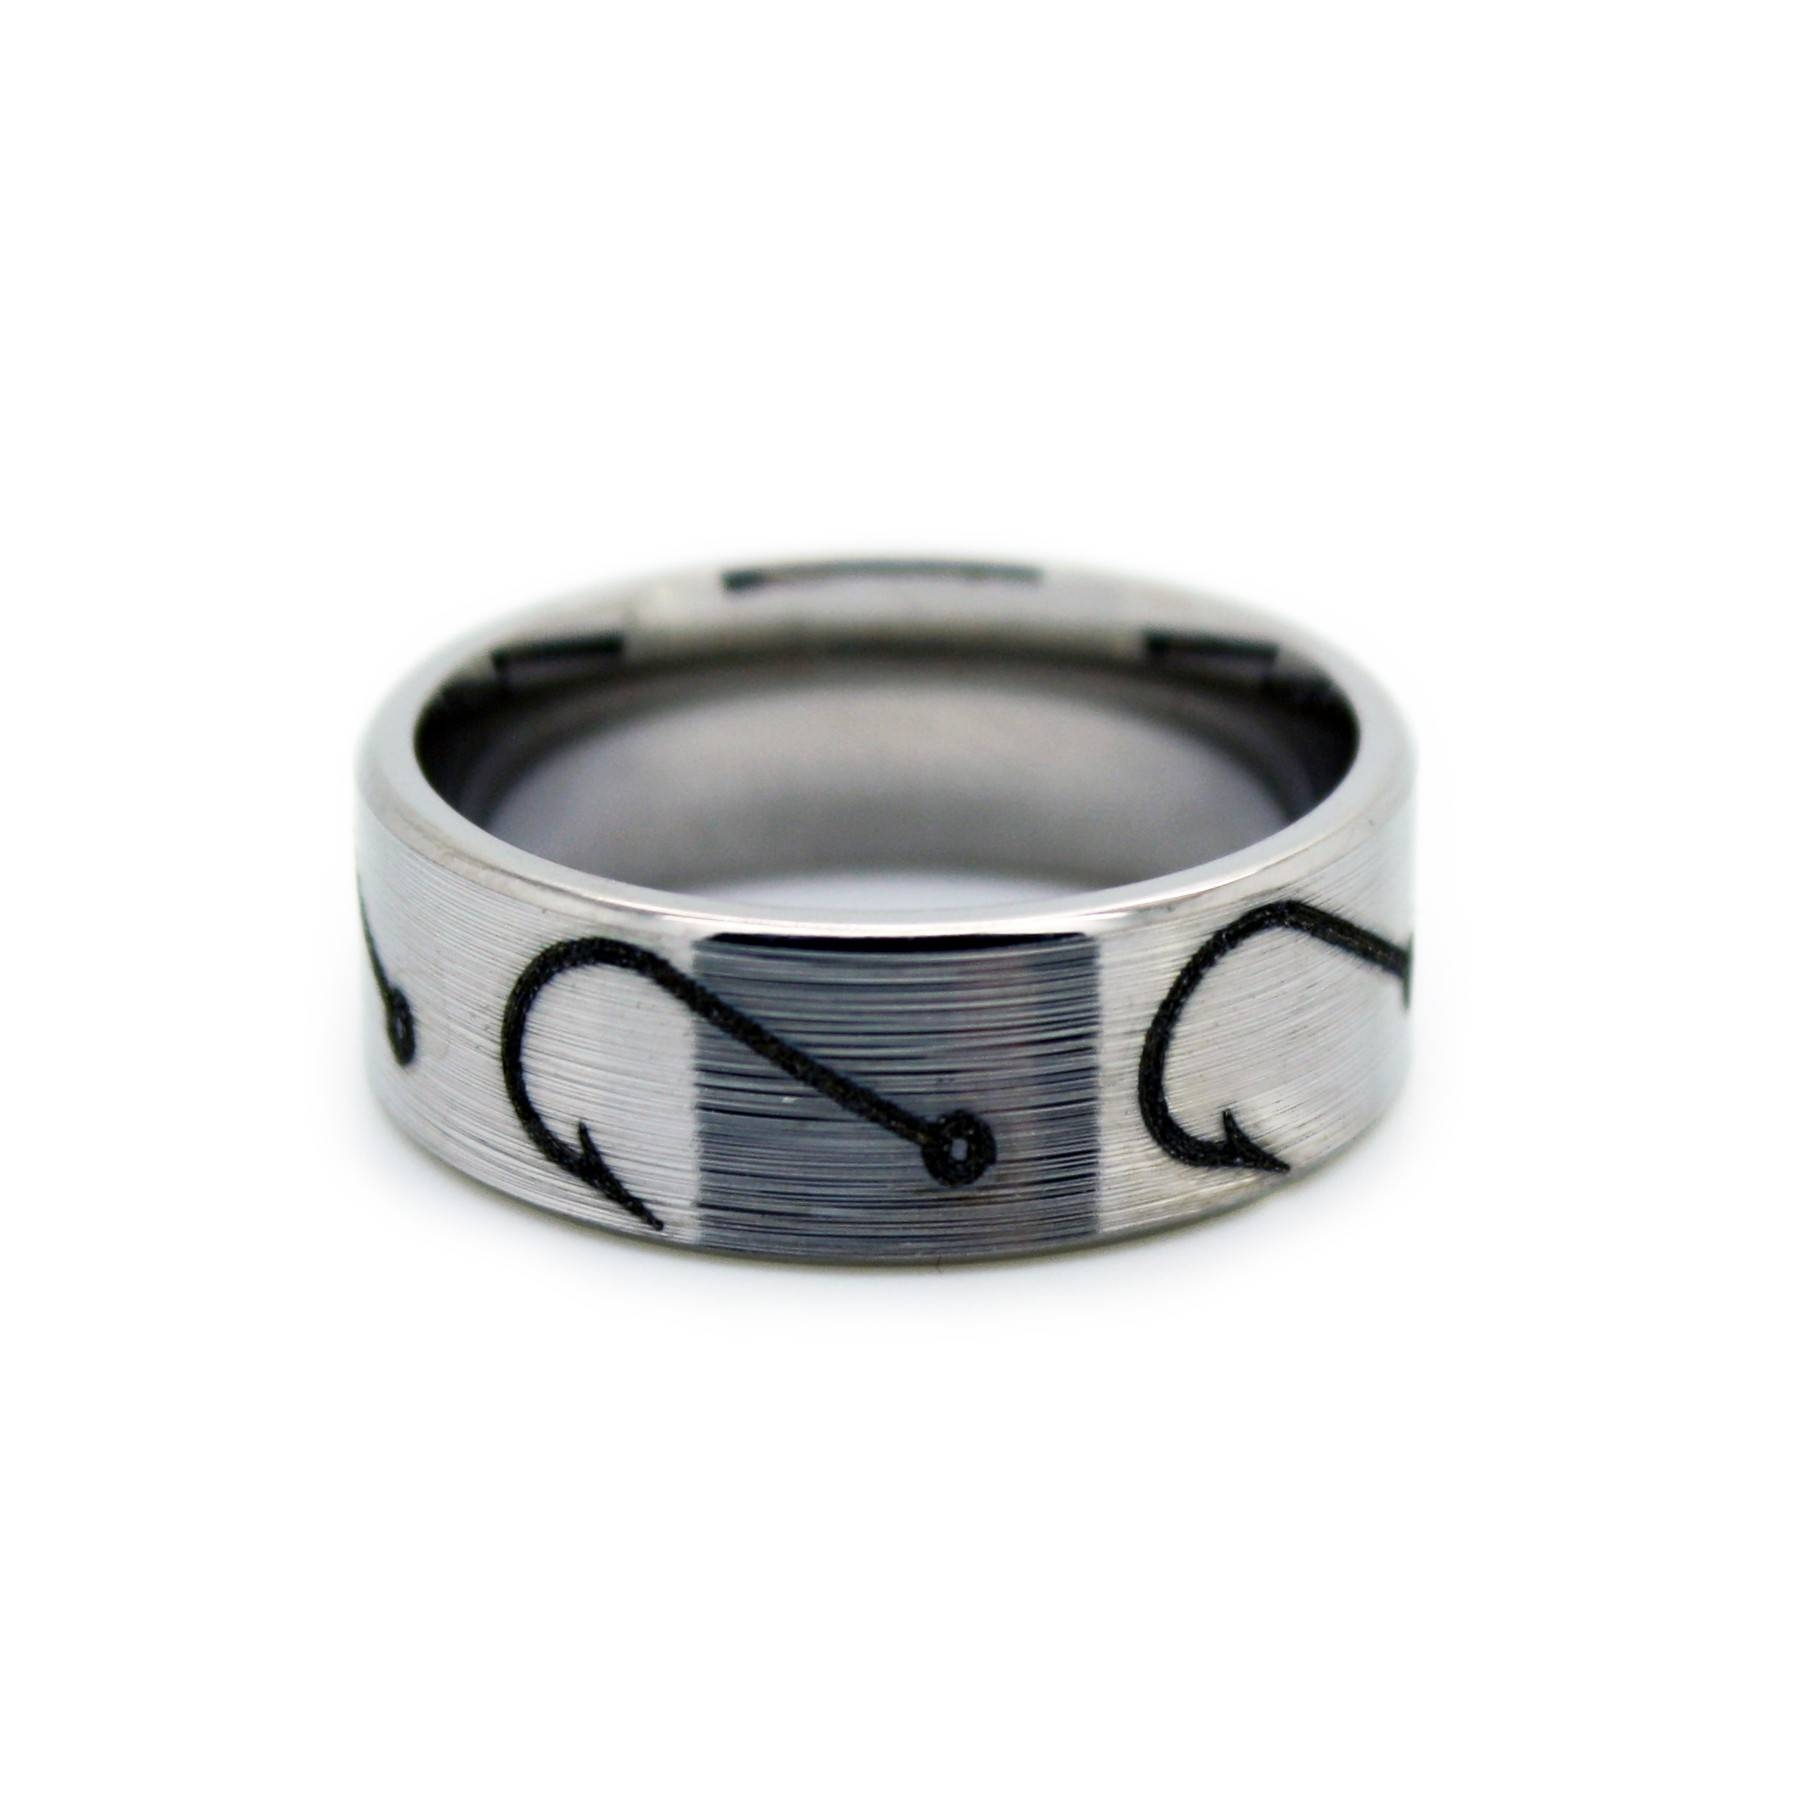 Custom Duck Band Wedding Rings For Men Beautiful Camo Mens Wedding Intended For Custom Duck Bands Wedding Rings For Men (View 2 of 15)